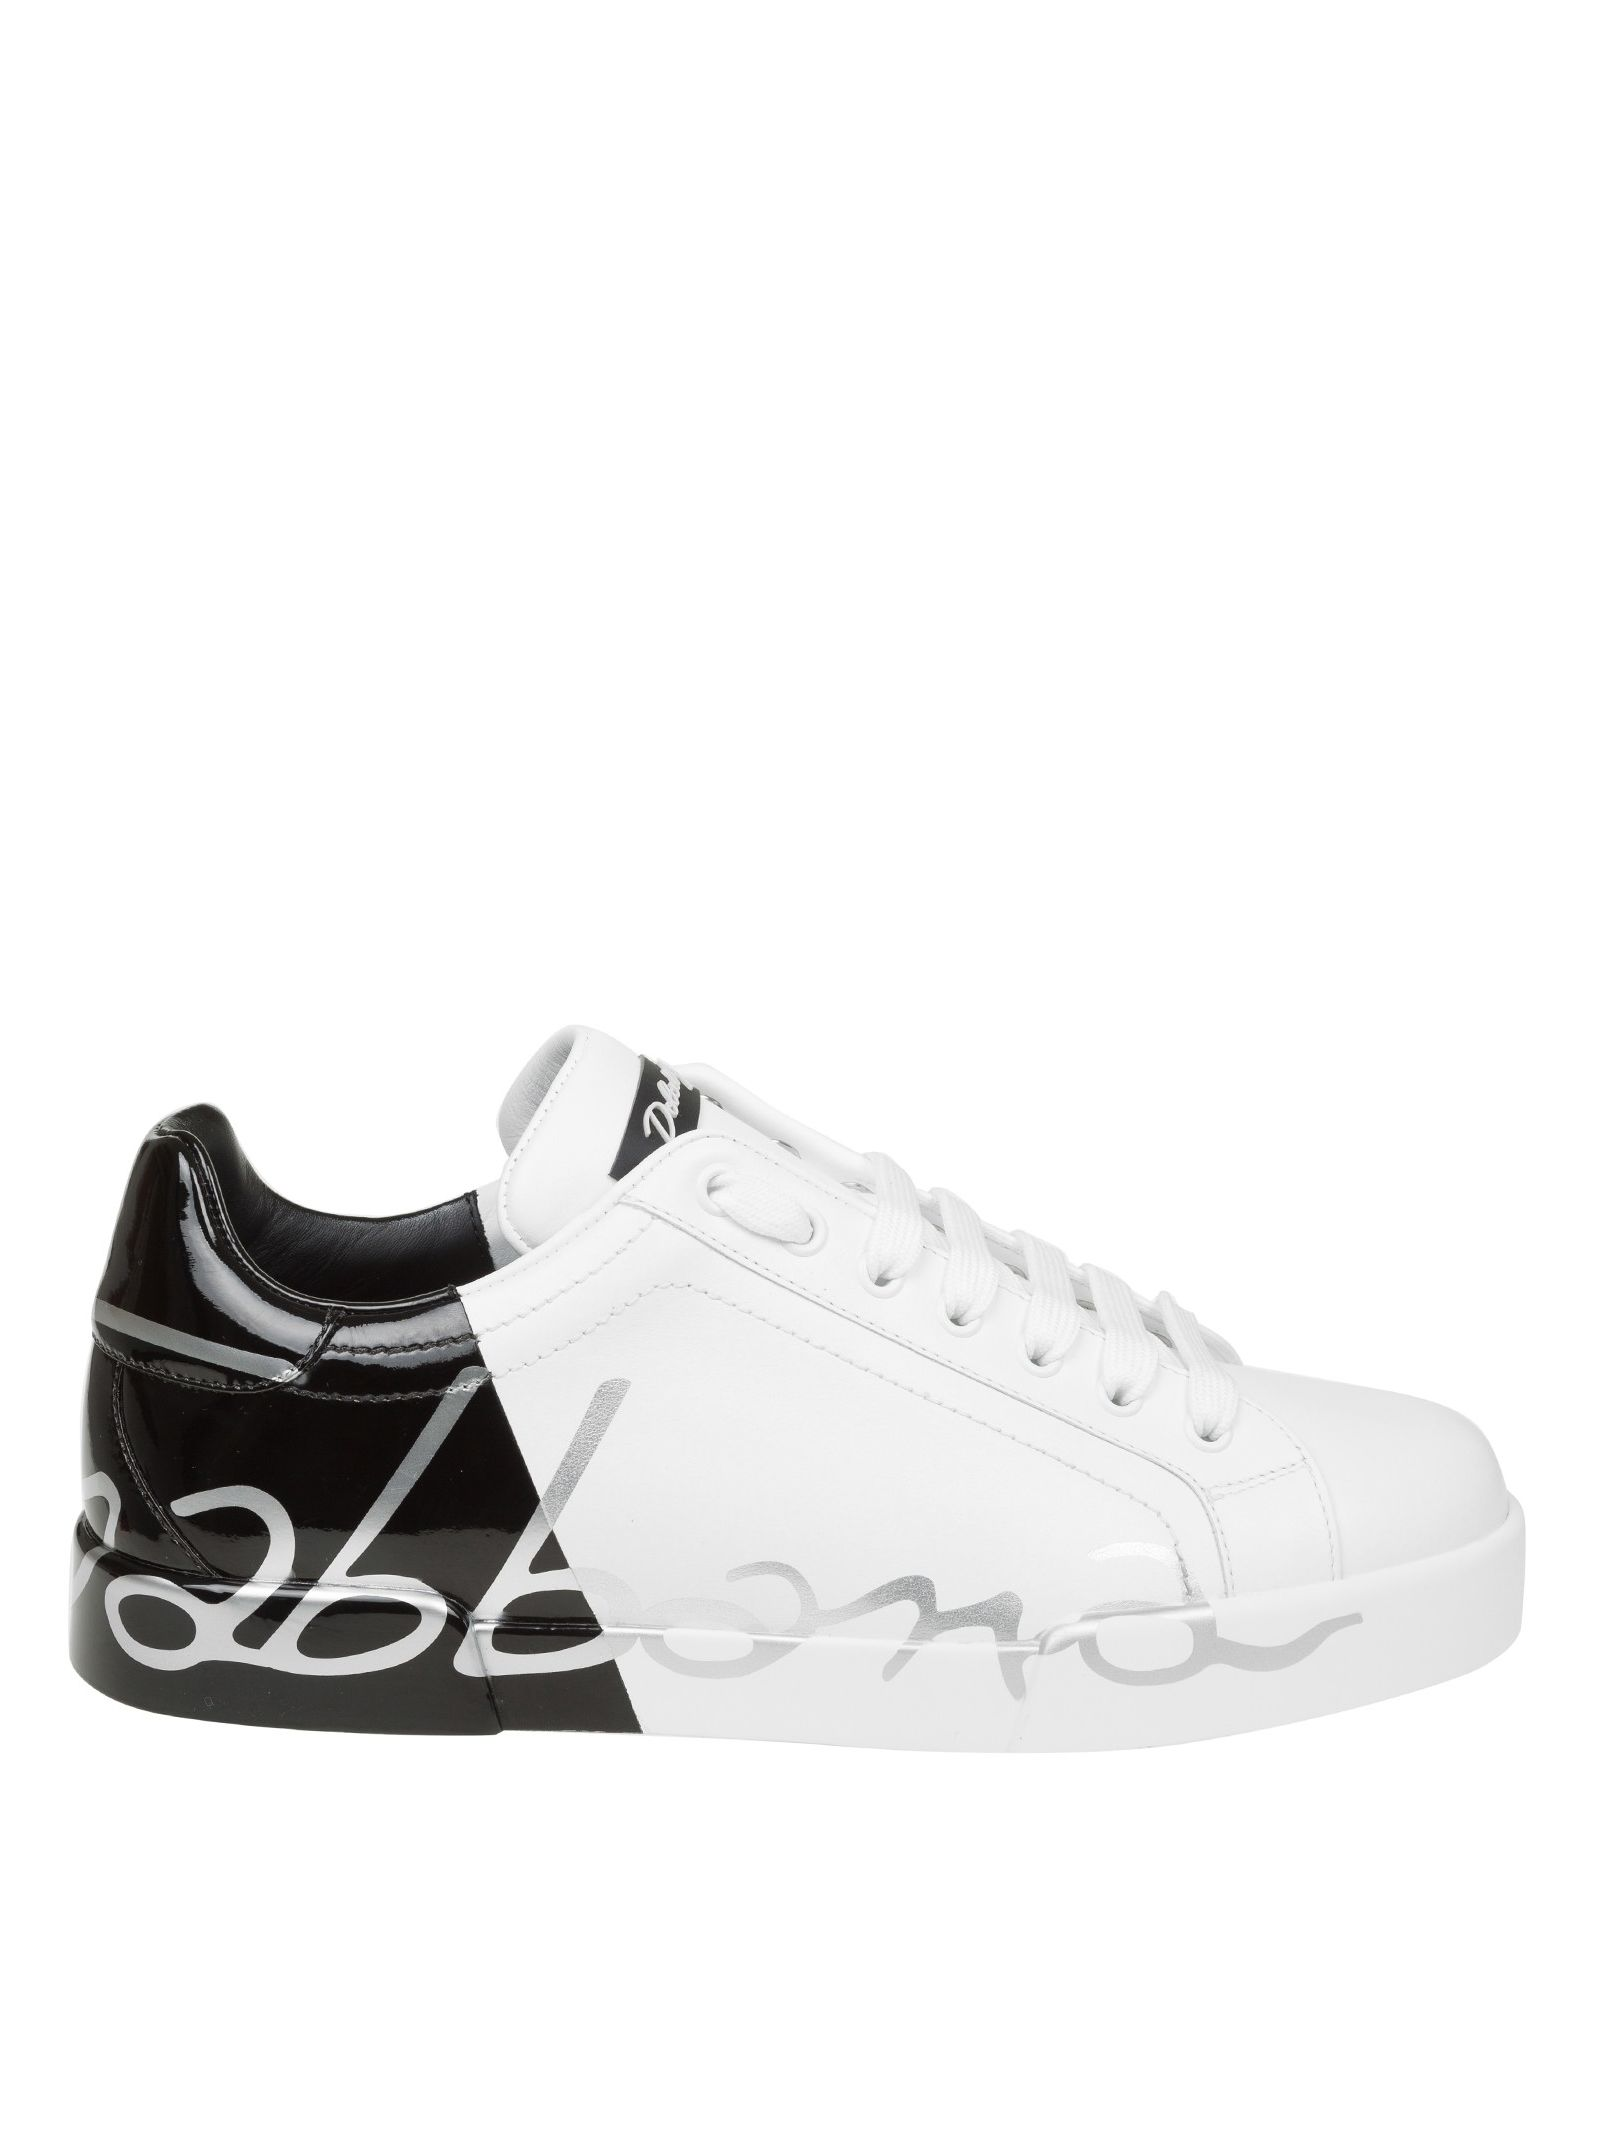 Dolce & Gabbana Sneakers In Black And White Leather